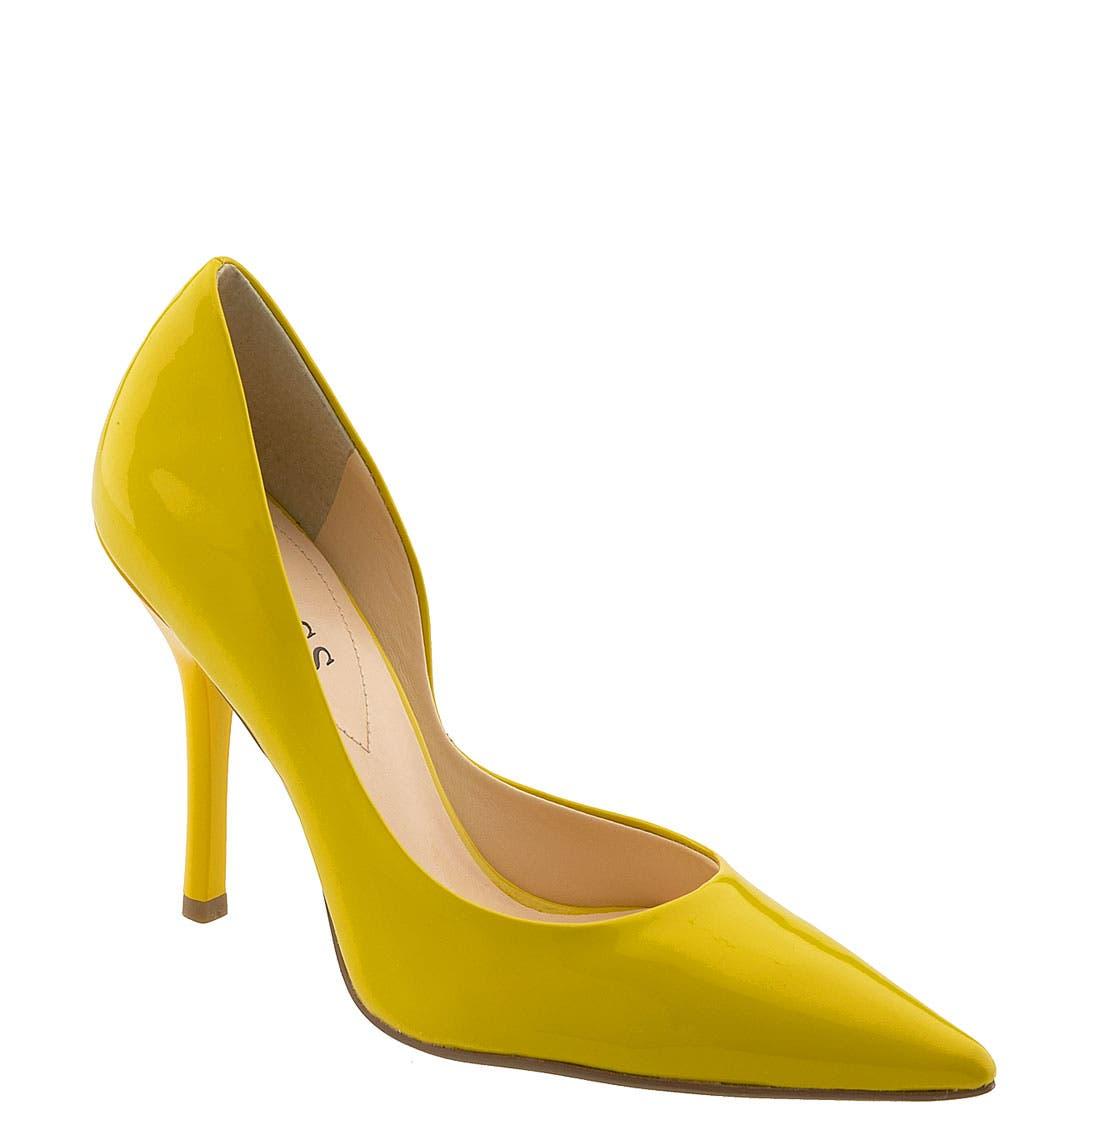 Main Image - GUESS 'Carrie' Patent Leather Pump